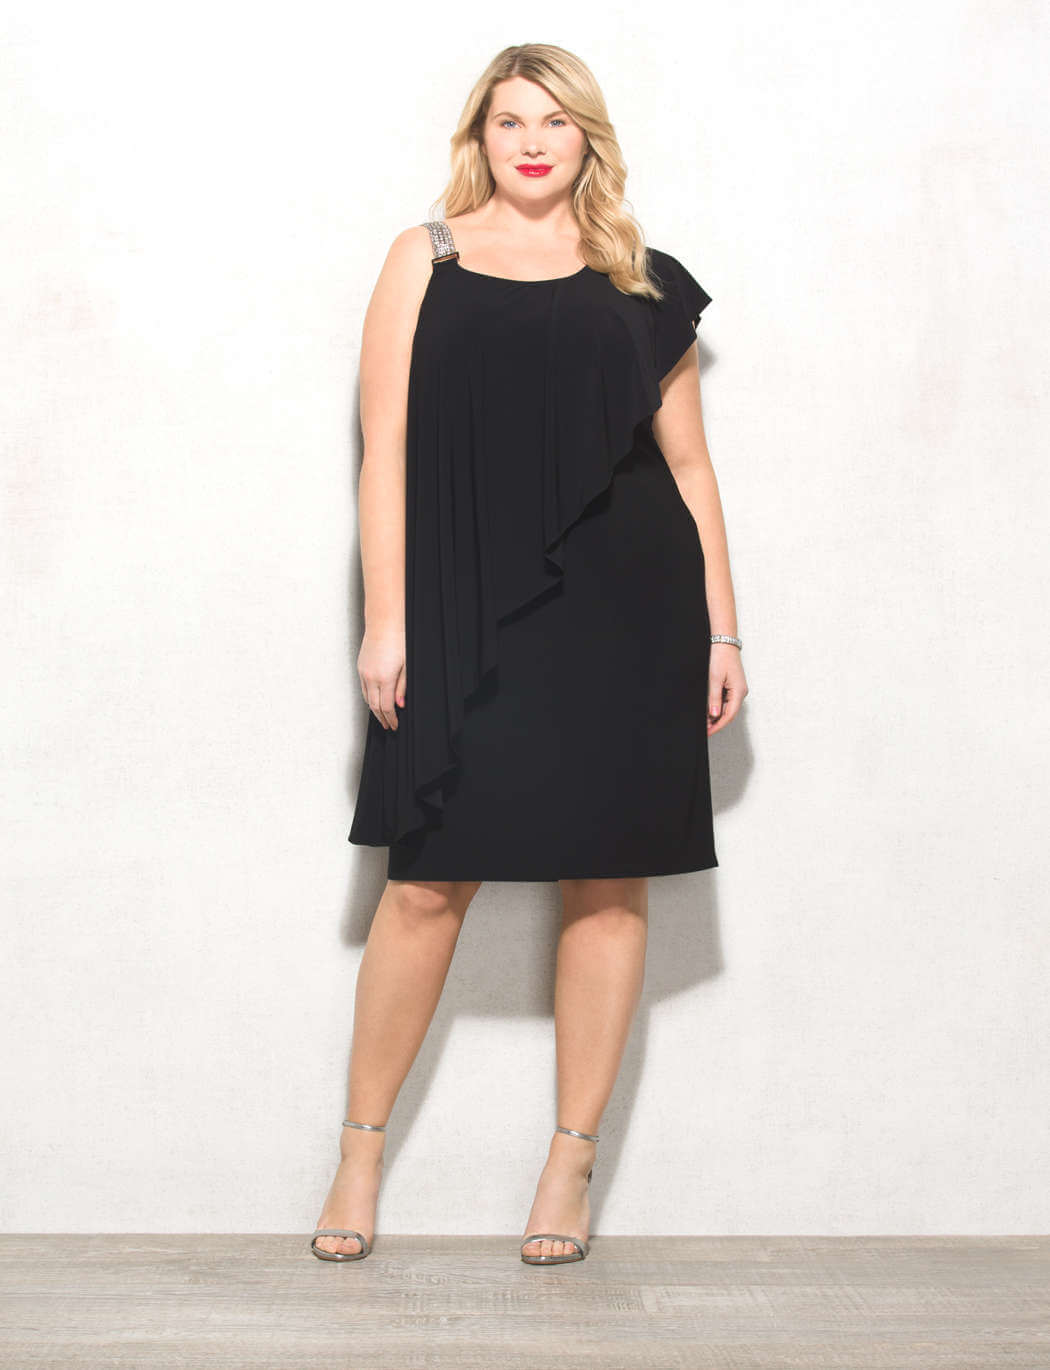 LBD plus size dresse for women